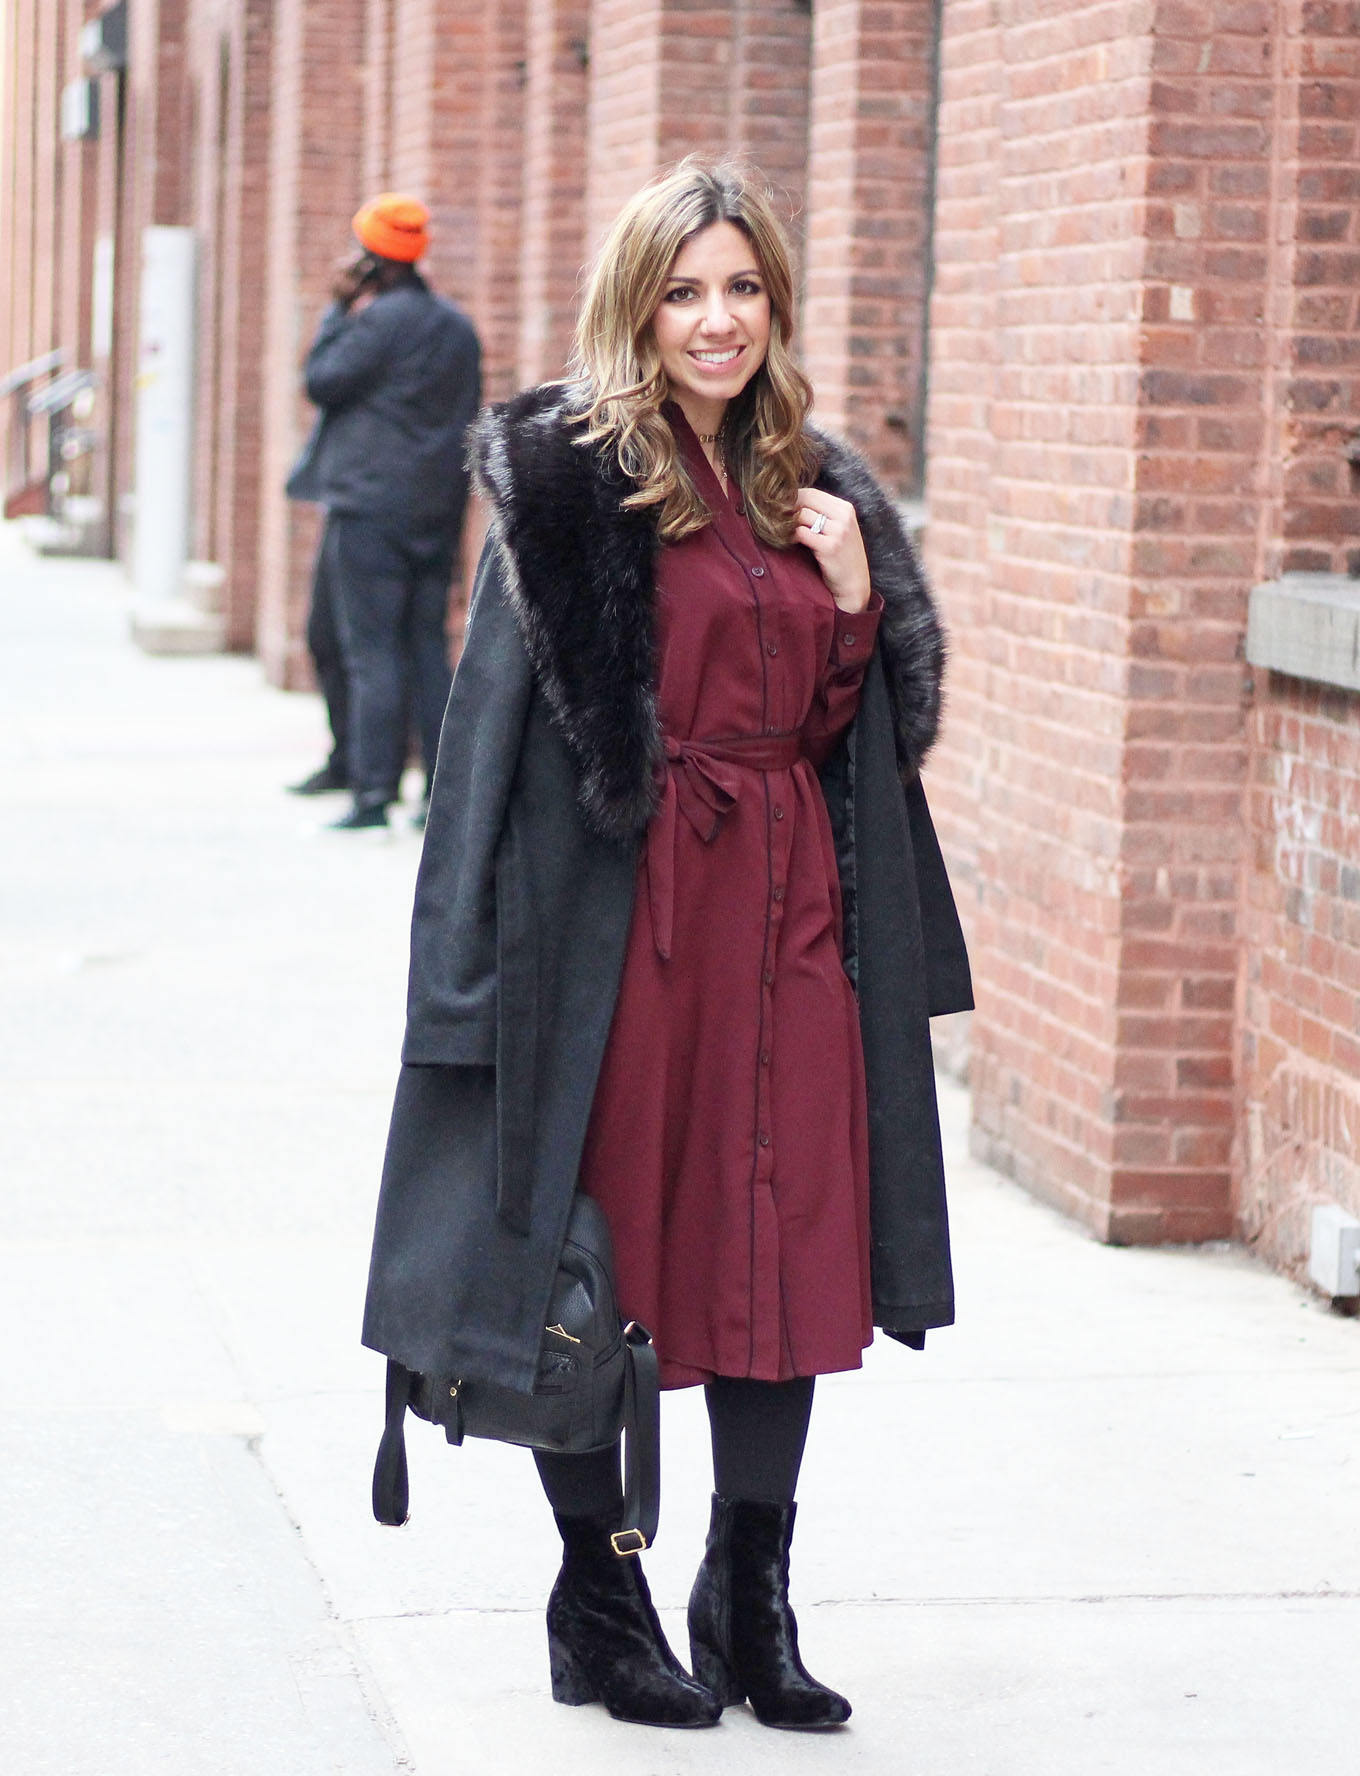 Lifestyle Blogger Roxane Birnbaum of Glass of Glam wearing a Who What Wear for Target Pajama Style Dress, Boohoo faux fur coat, and Justfab Booties